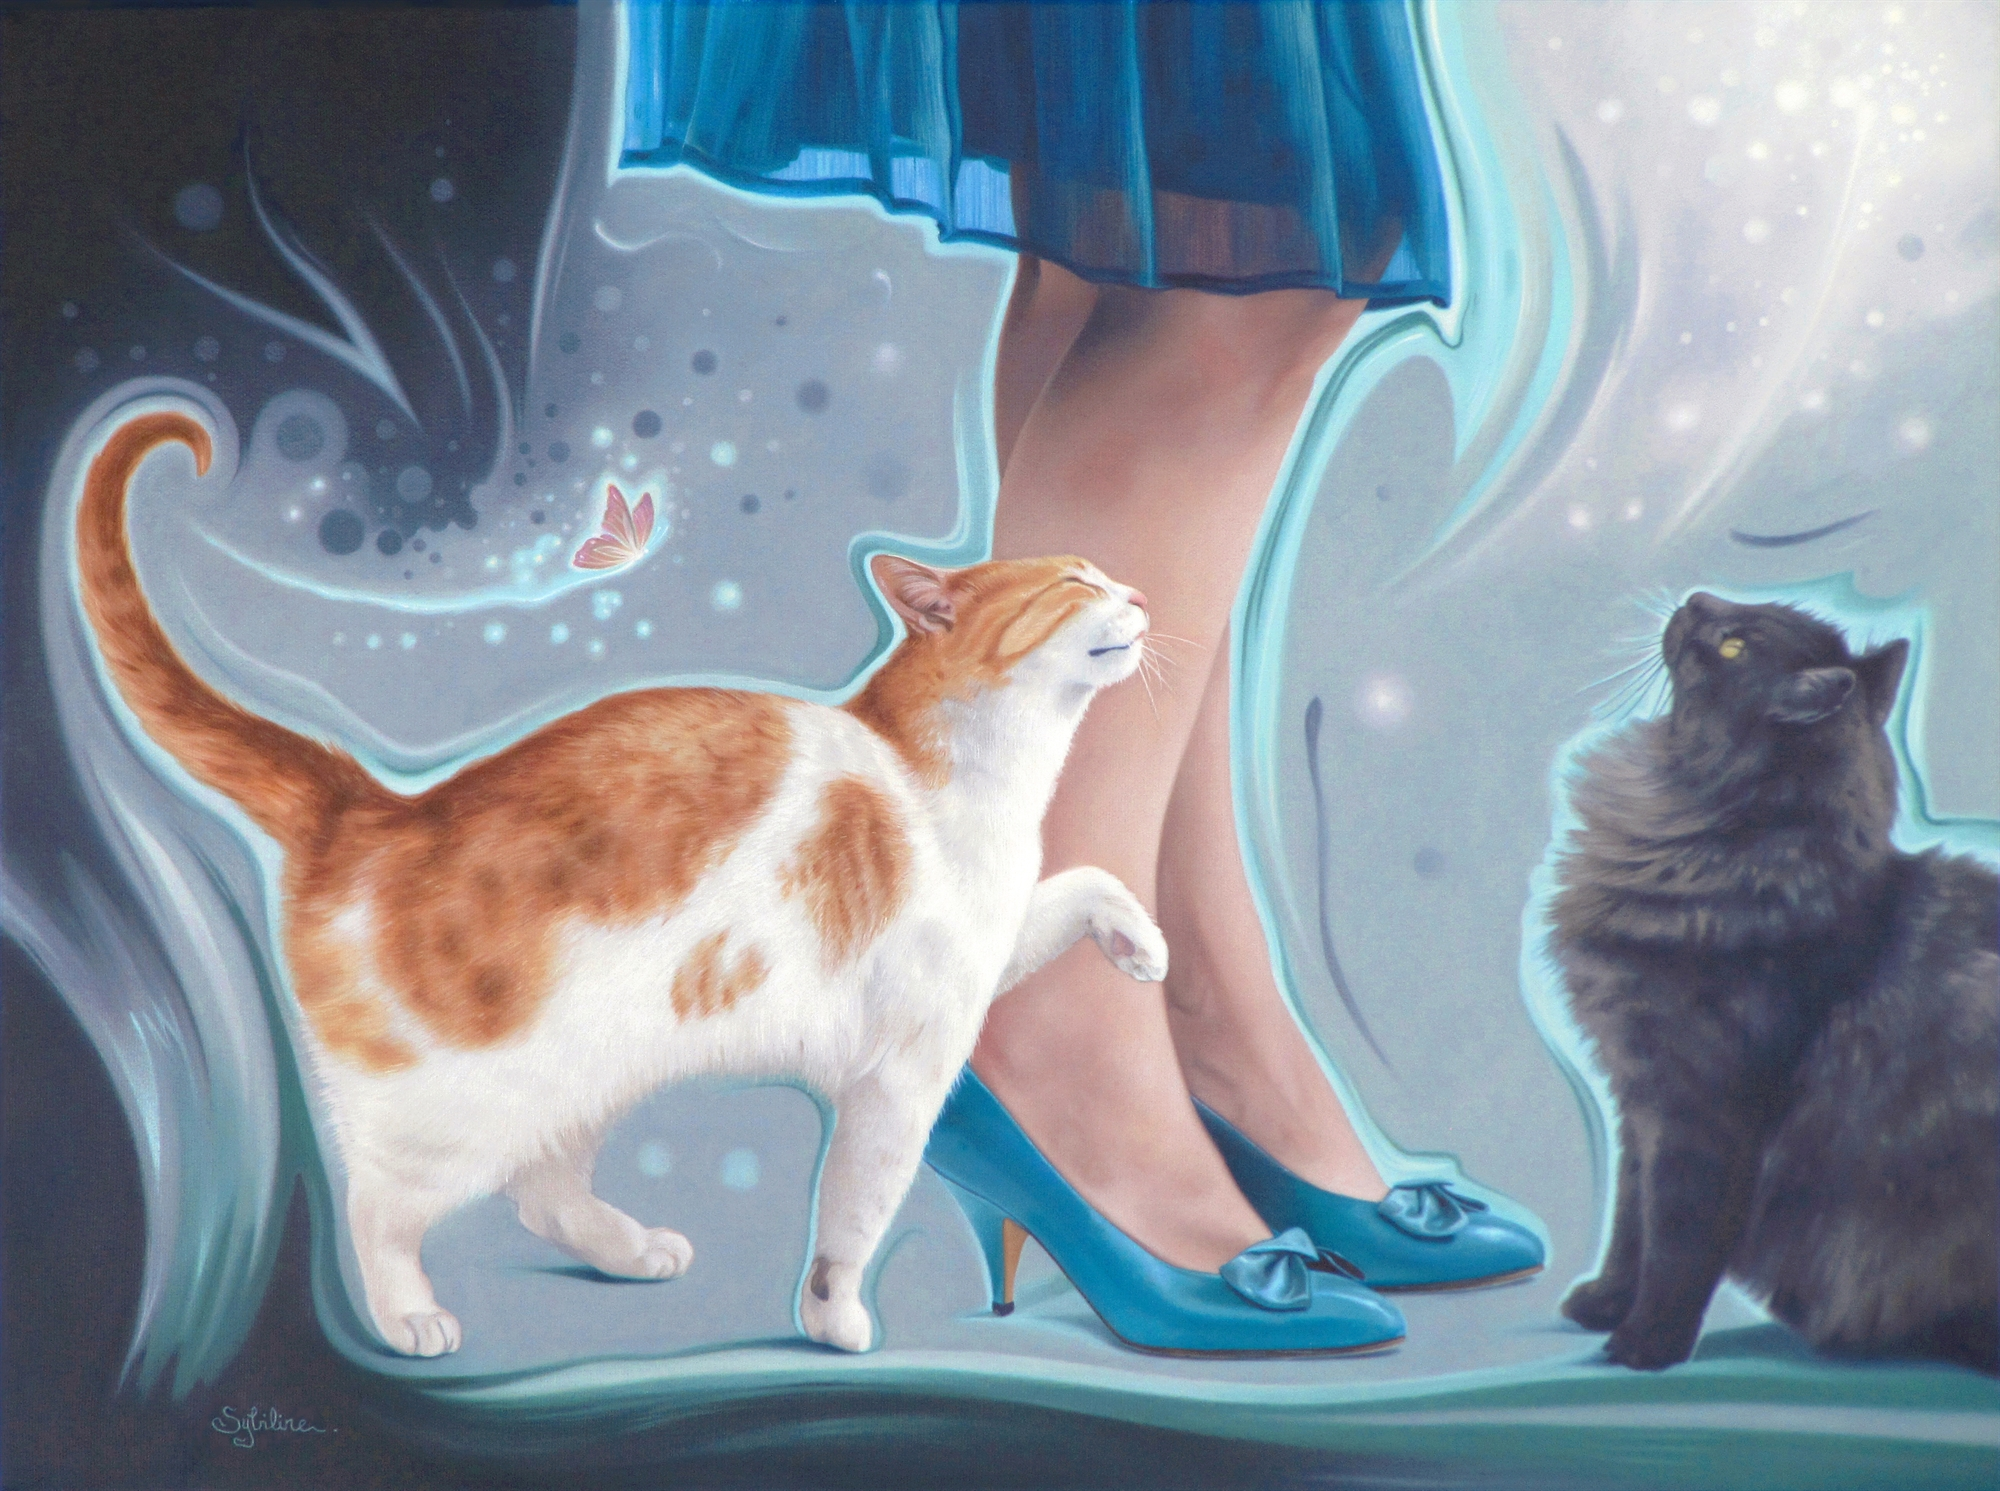 Irresistible Blue Shoes by Sybiline